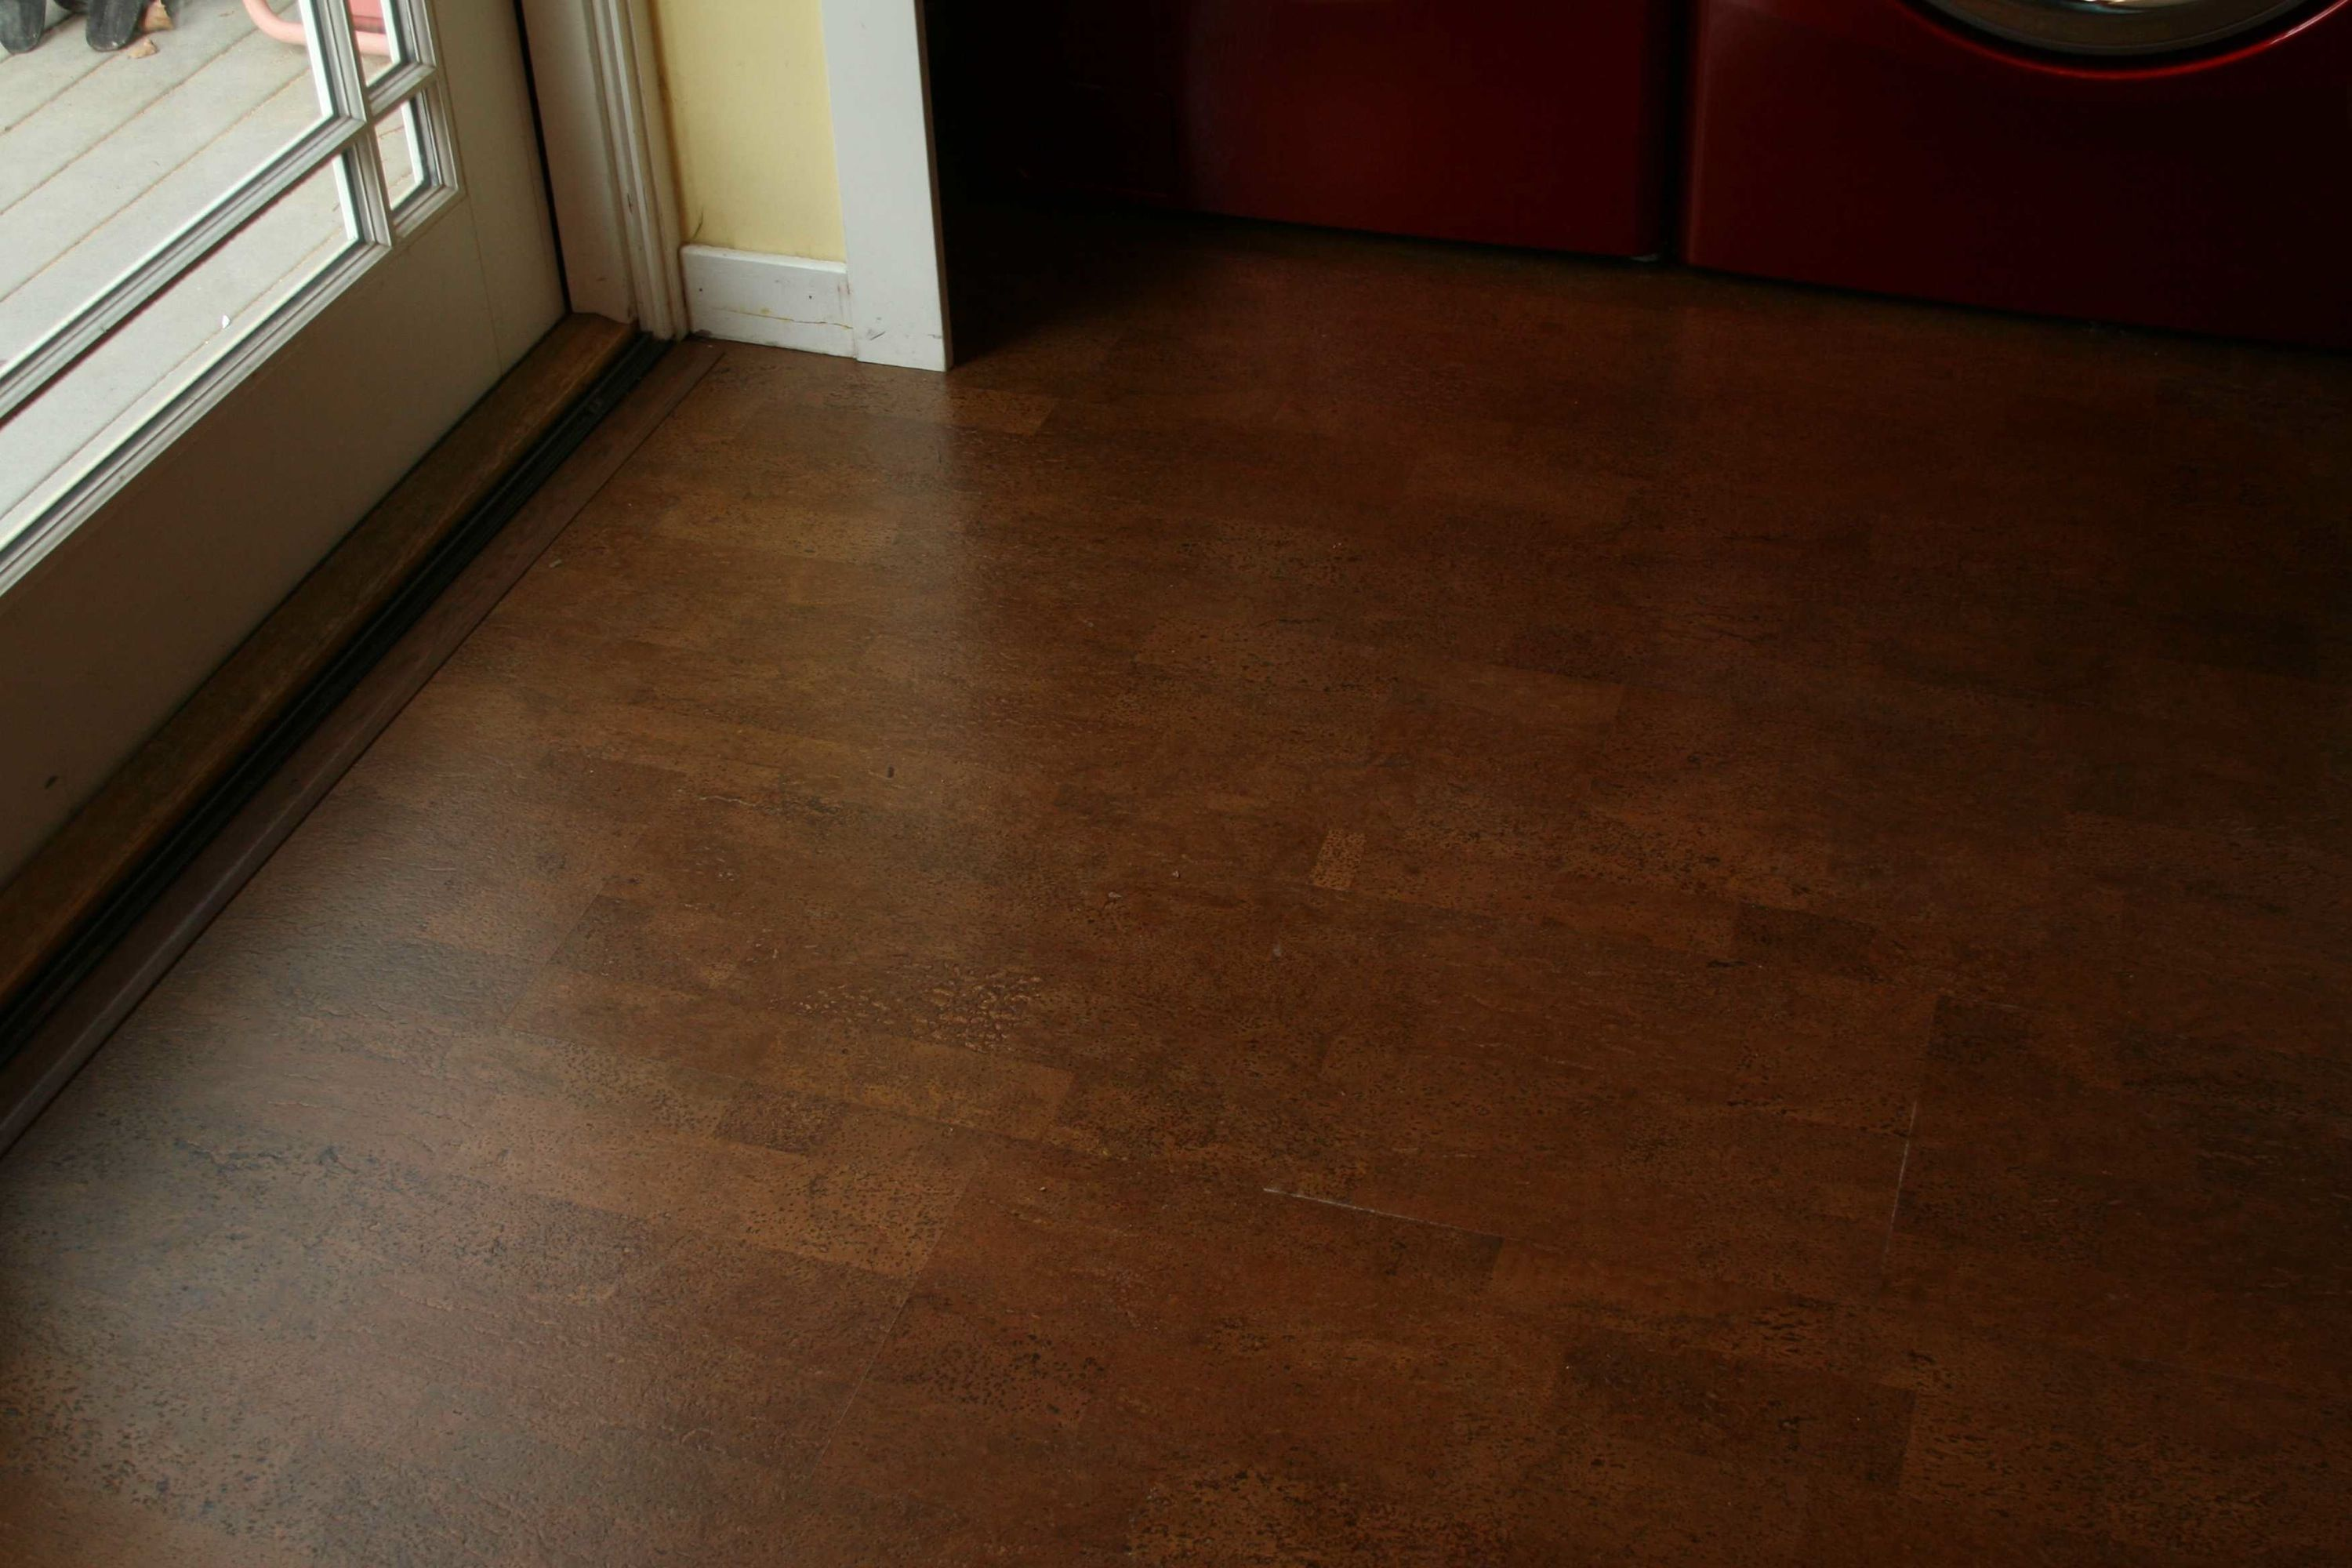 Cork Flooring Going Over Bad Kitchen Tile! (brand, Hang)   Home Interior  Design And Decorating   Page 2